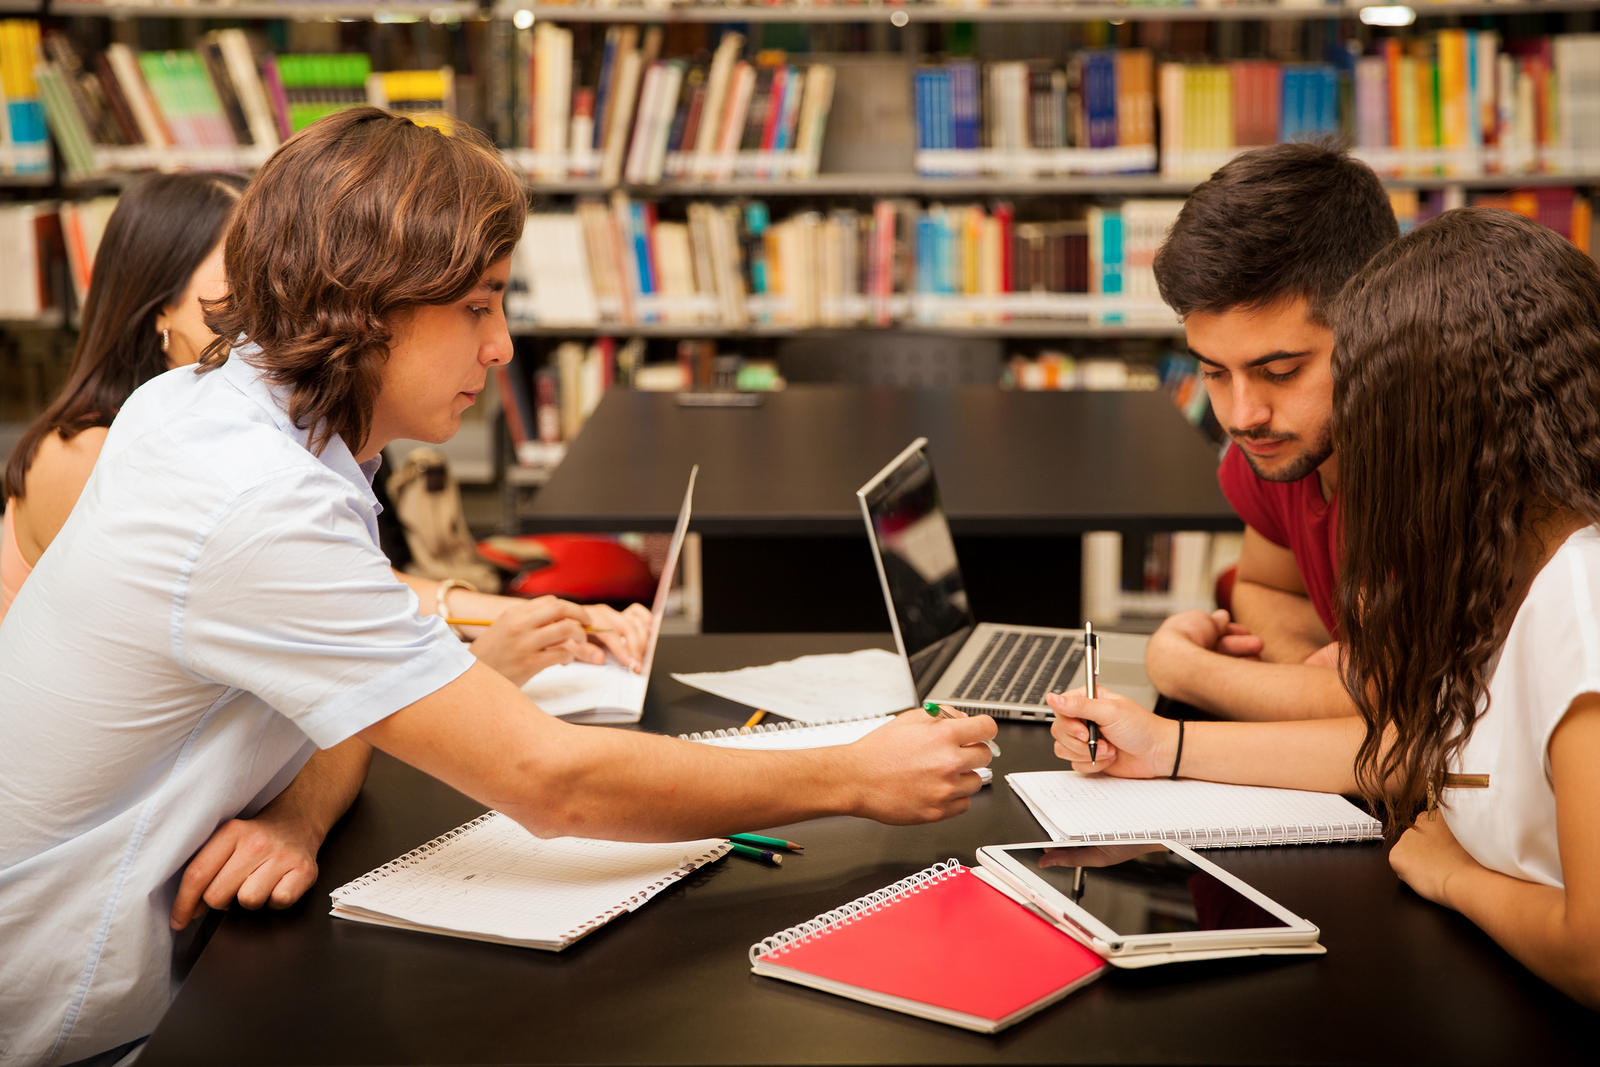 According to a study, open educational resources not only reduce the costs of pursuing a university degree, they also improve academic performance and lower dropout rates. - Image: Bigstockphoto